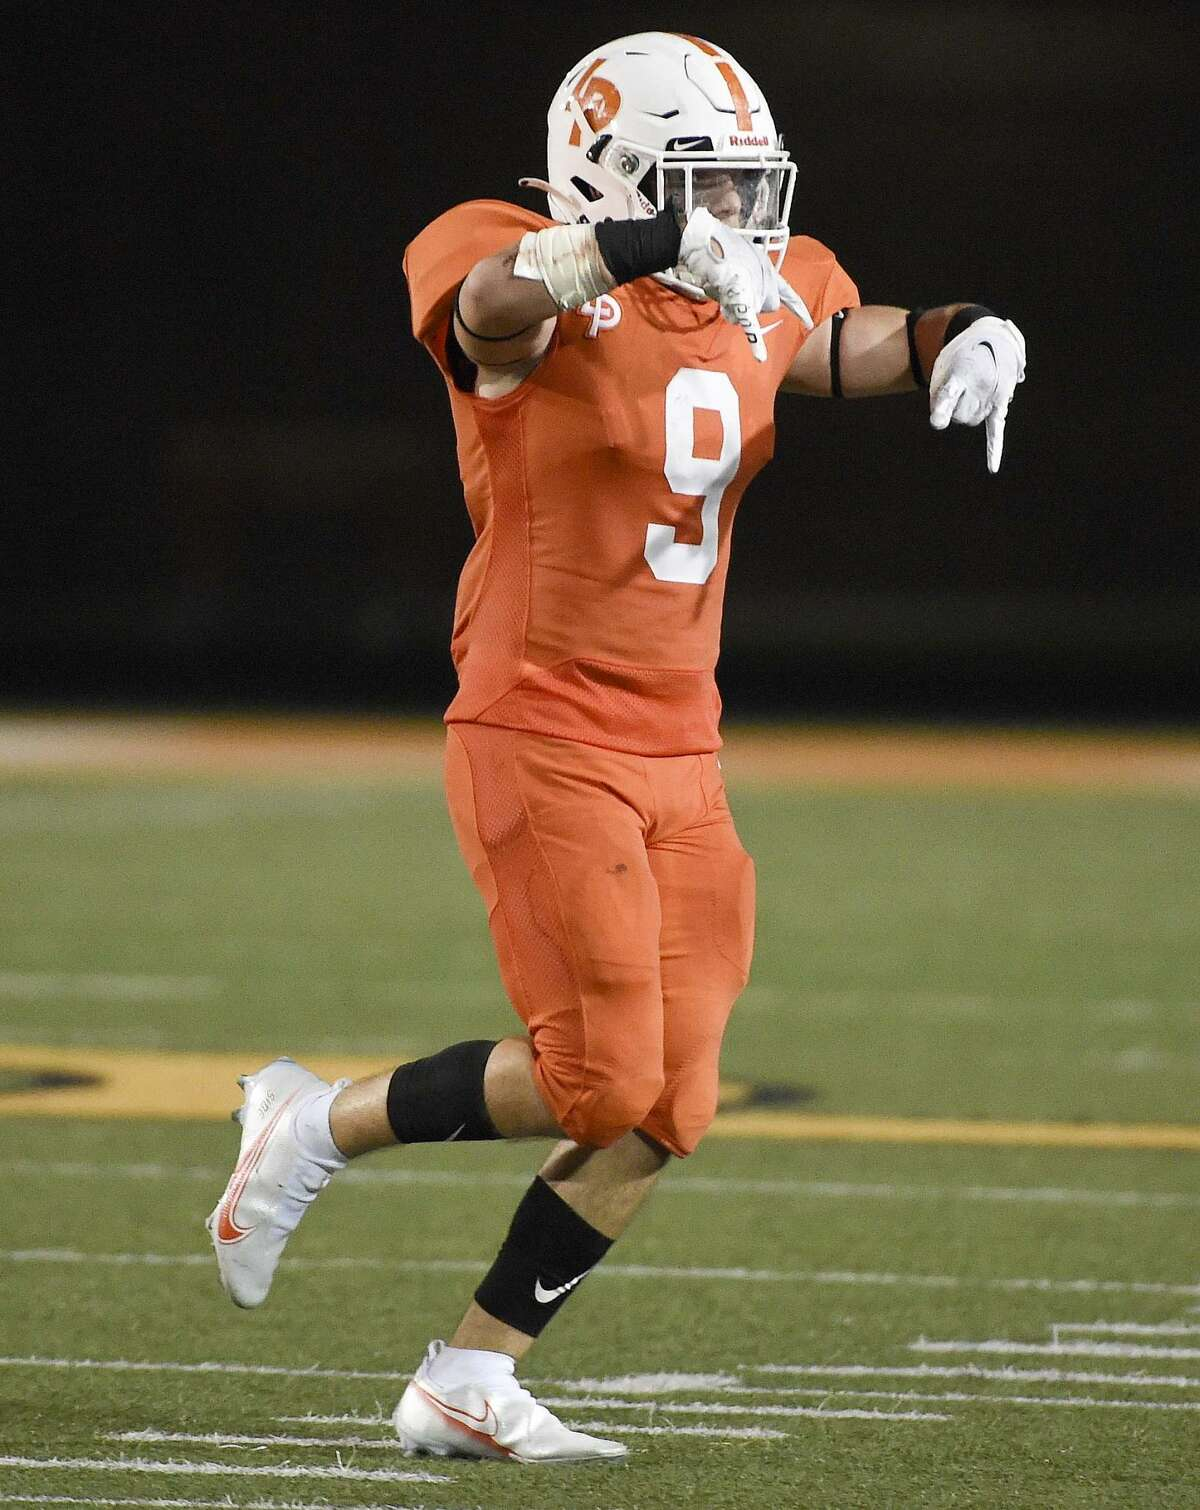 La Porte defensive back Justin Kay celebrates his fumble recovery during the second half of a high school football game against Deer Park, Friday, Sept. 25, 2020, in La Porte.